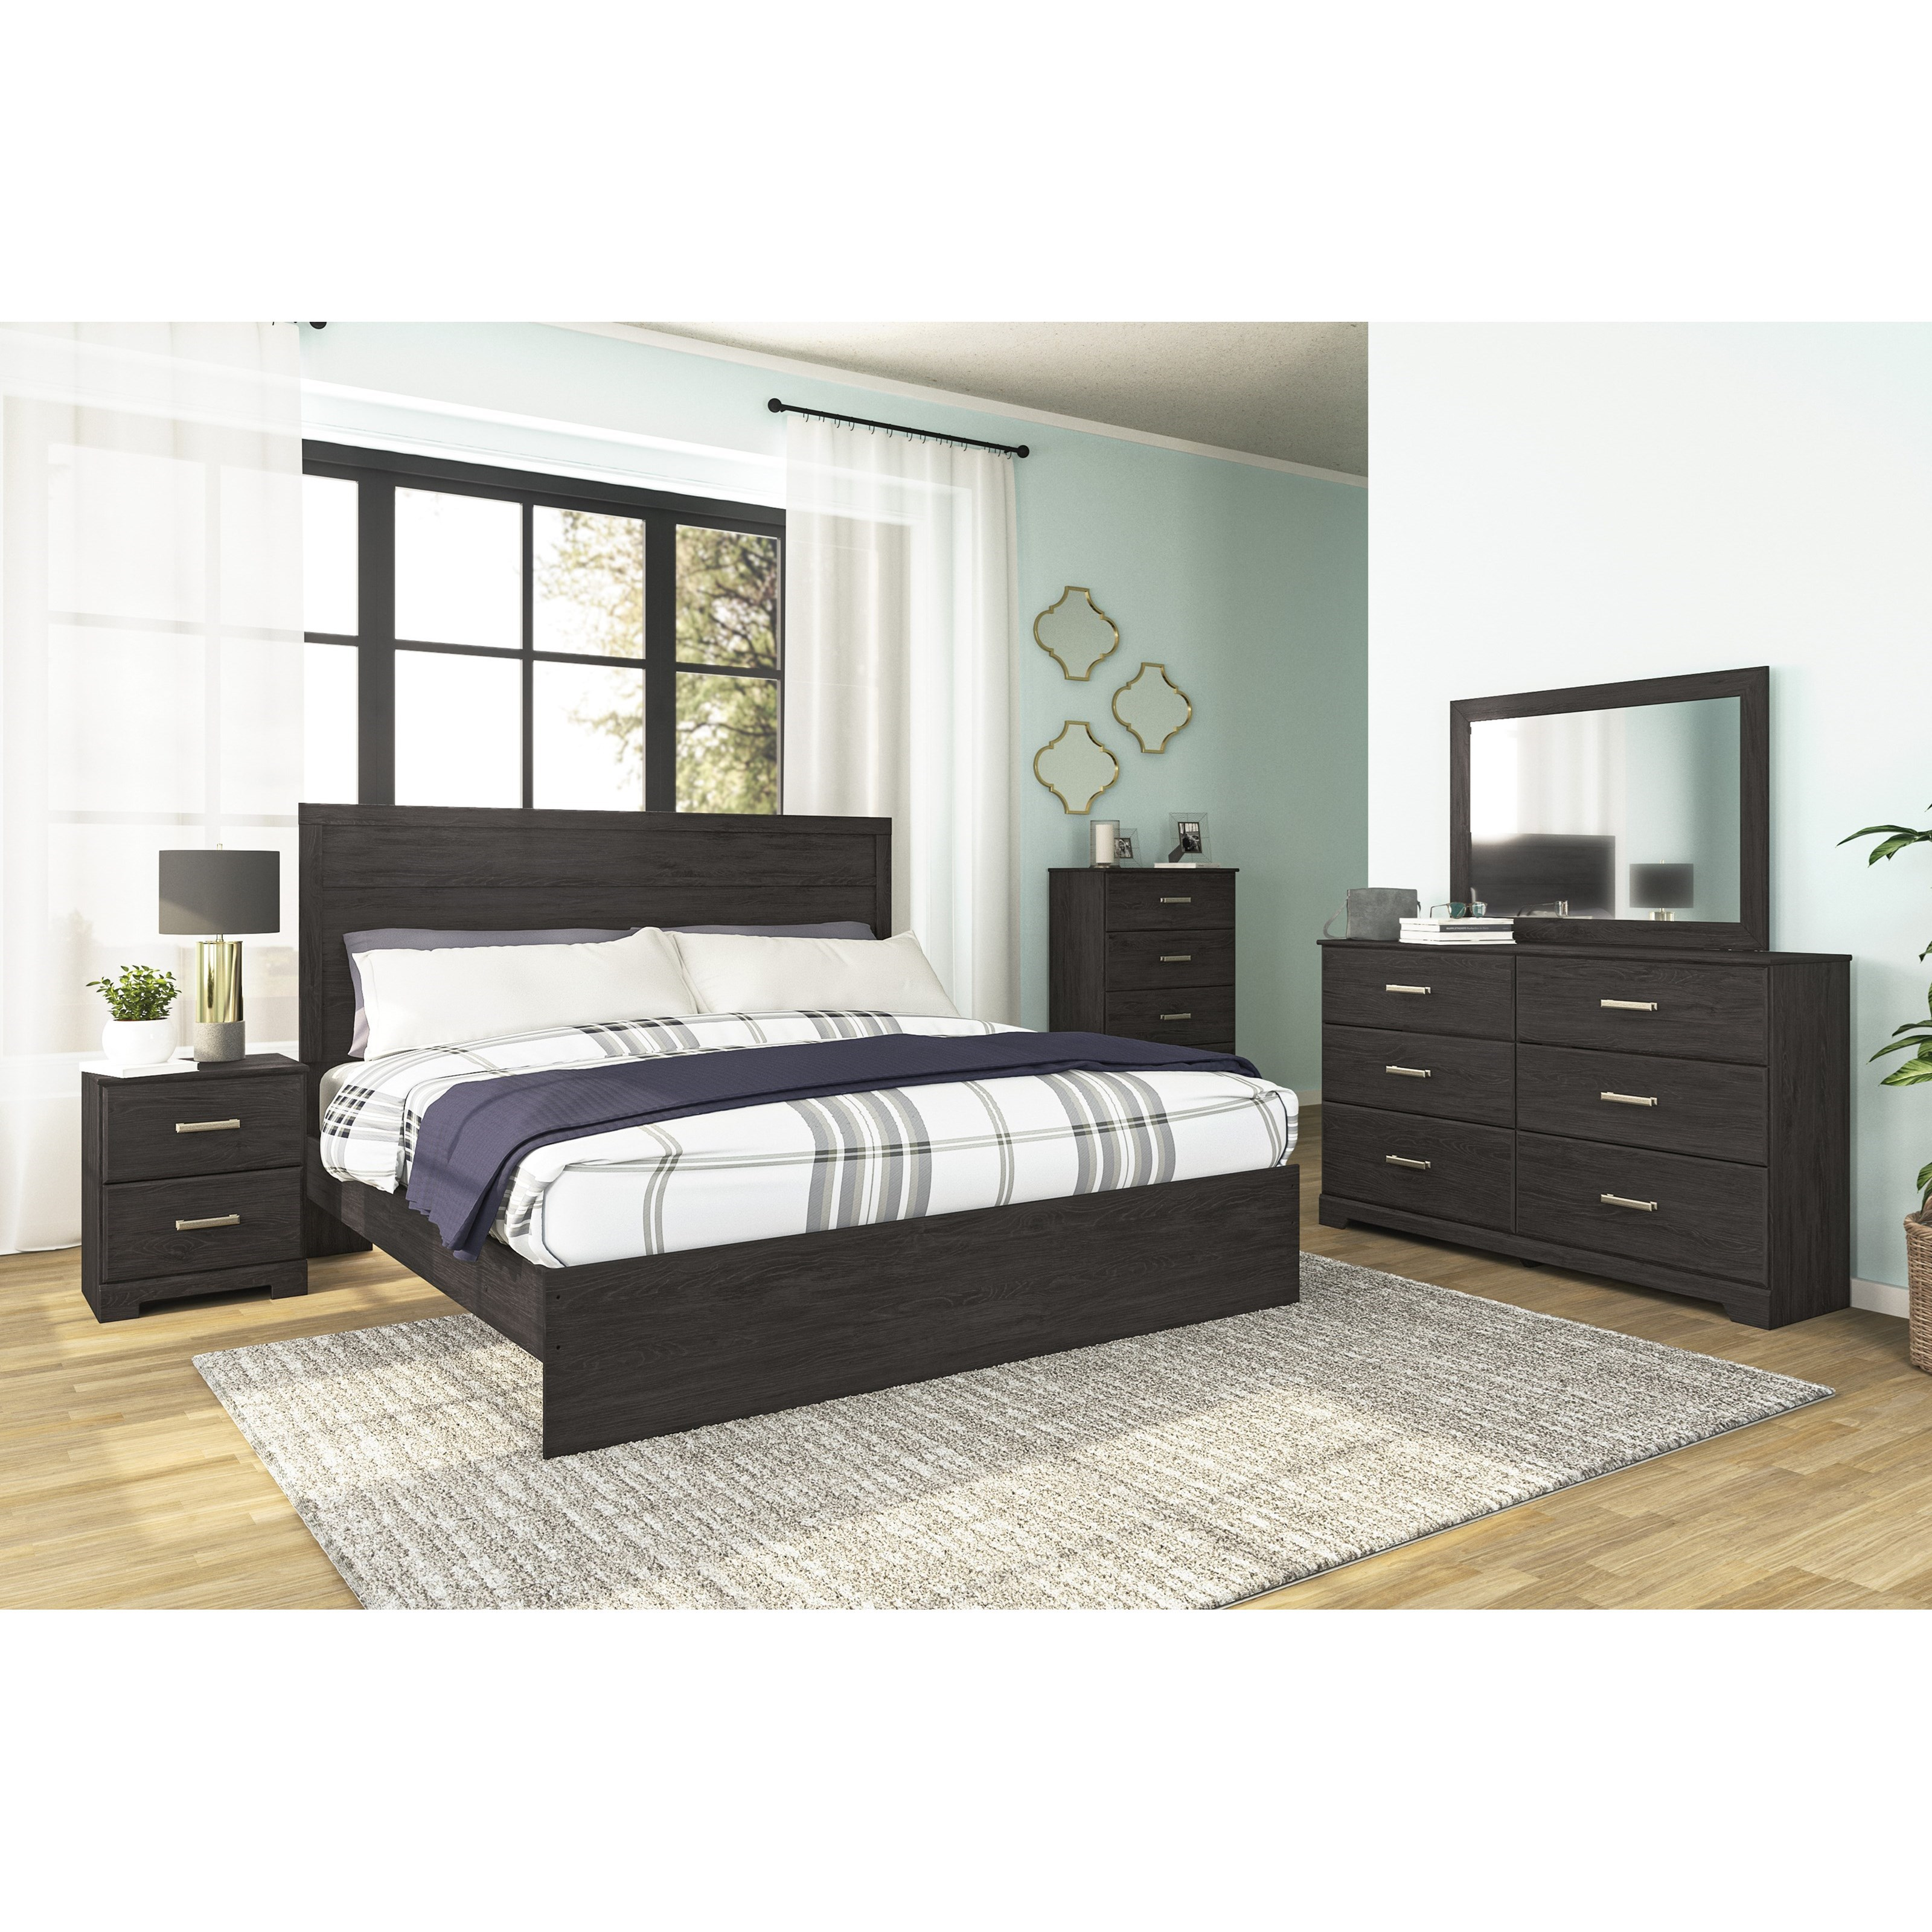 Belachime King Bedroom Group by Signature Design by Ashley at Rife's Home Furniture